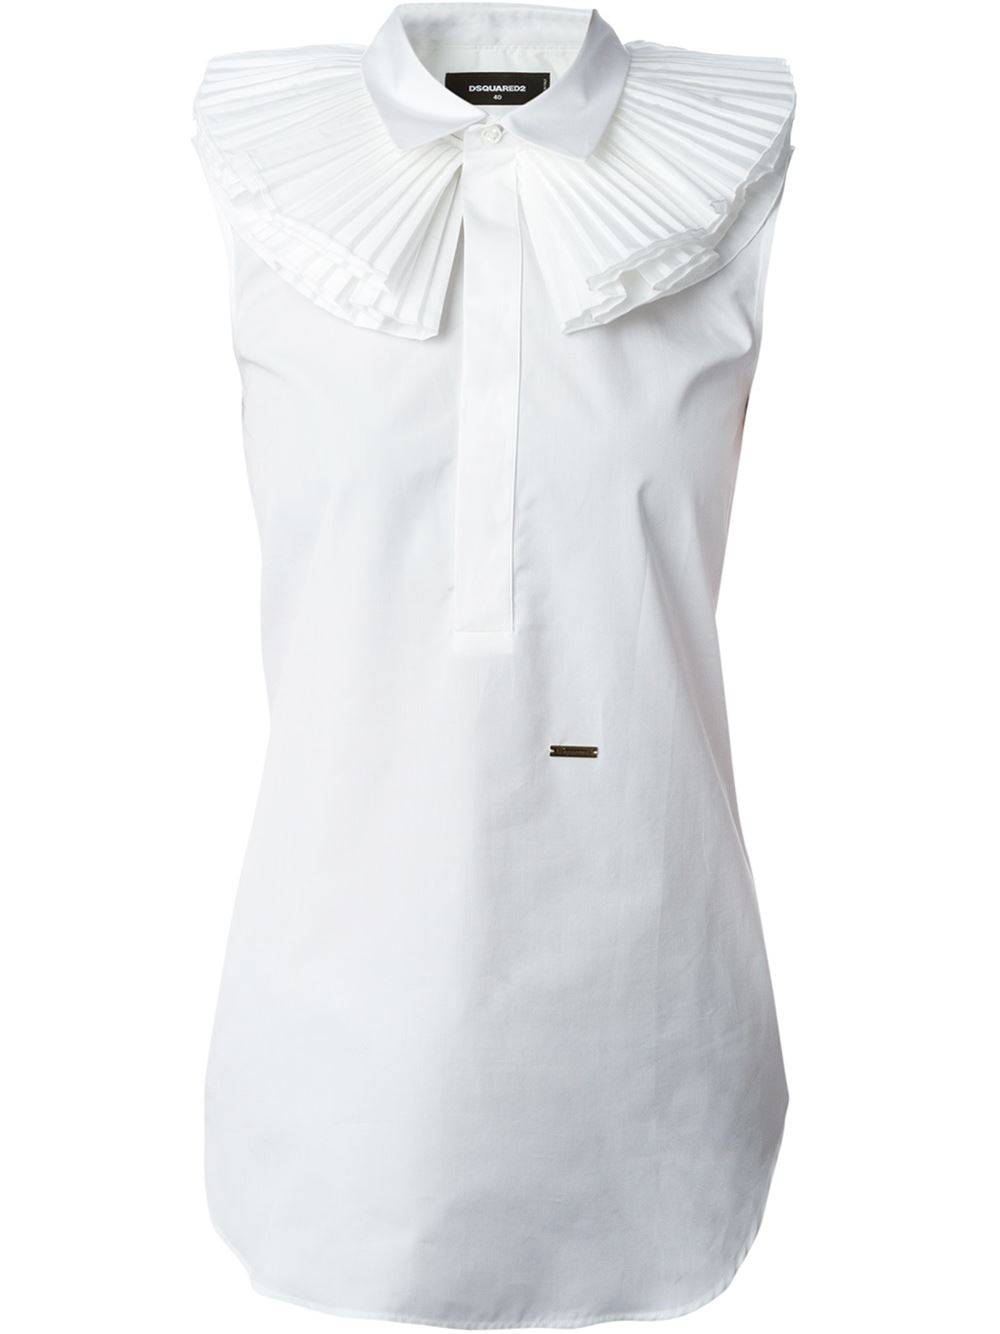 01f2e952b2a115 DSquared² Ruffle Collar Sleeveless Top in White - Lyst